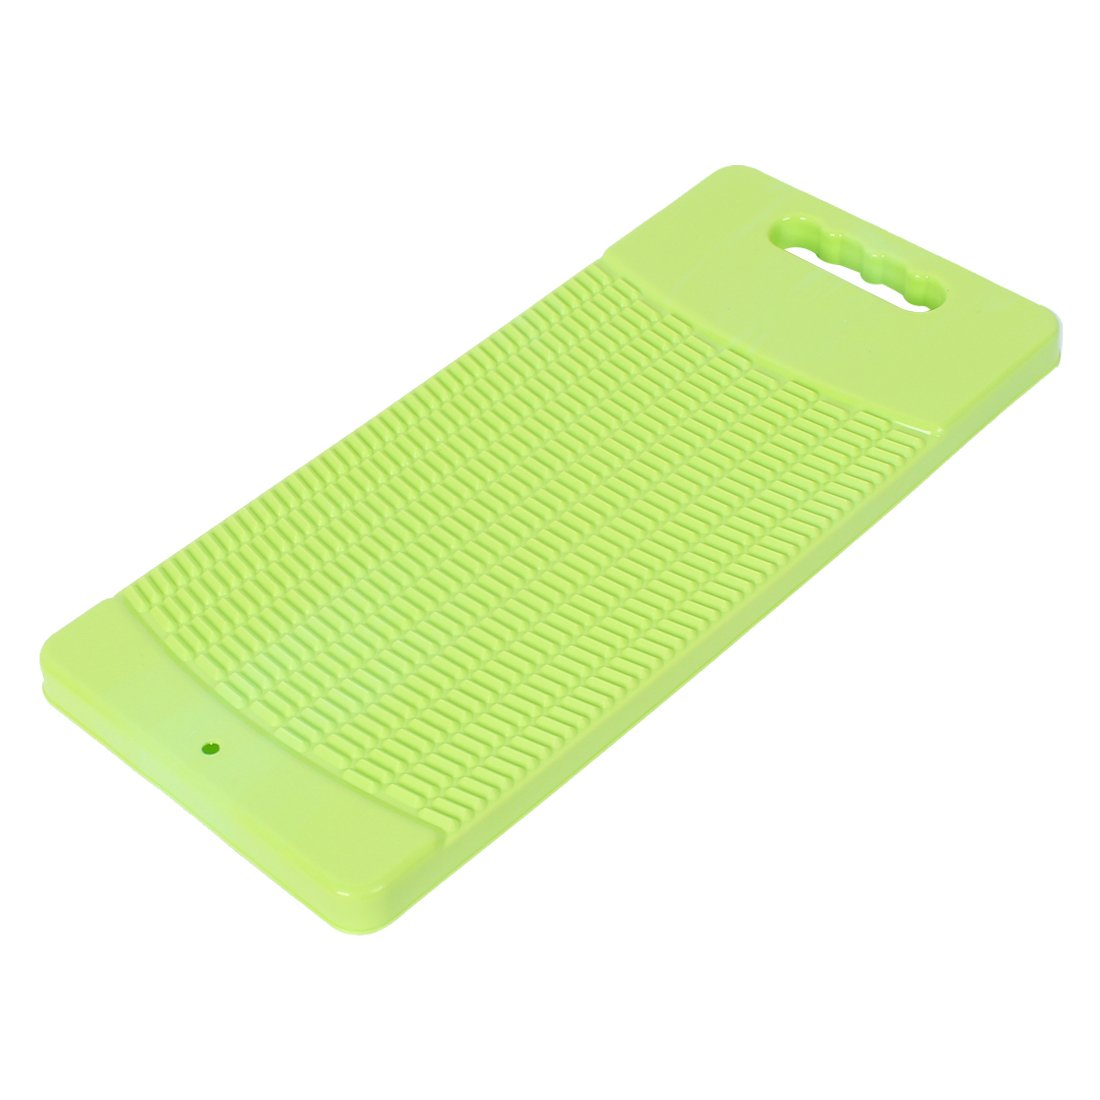 uxcellPlastic Rectangle Shaped Washing Clothes Washboard Yellow Green US-SA-AJD-171509